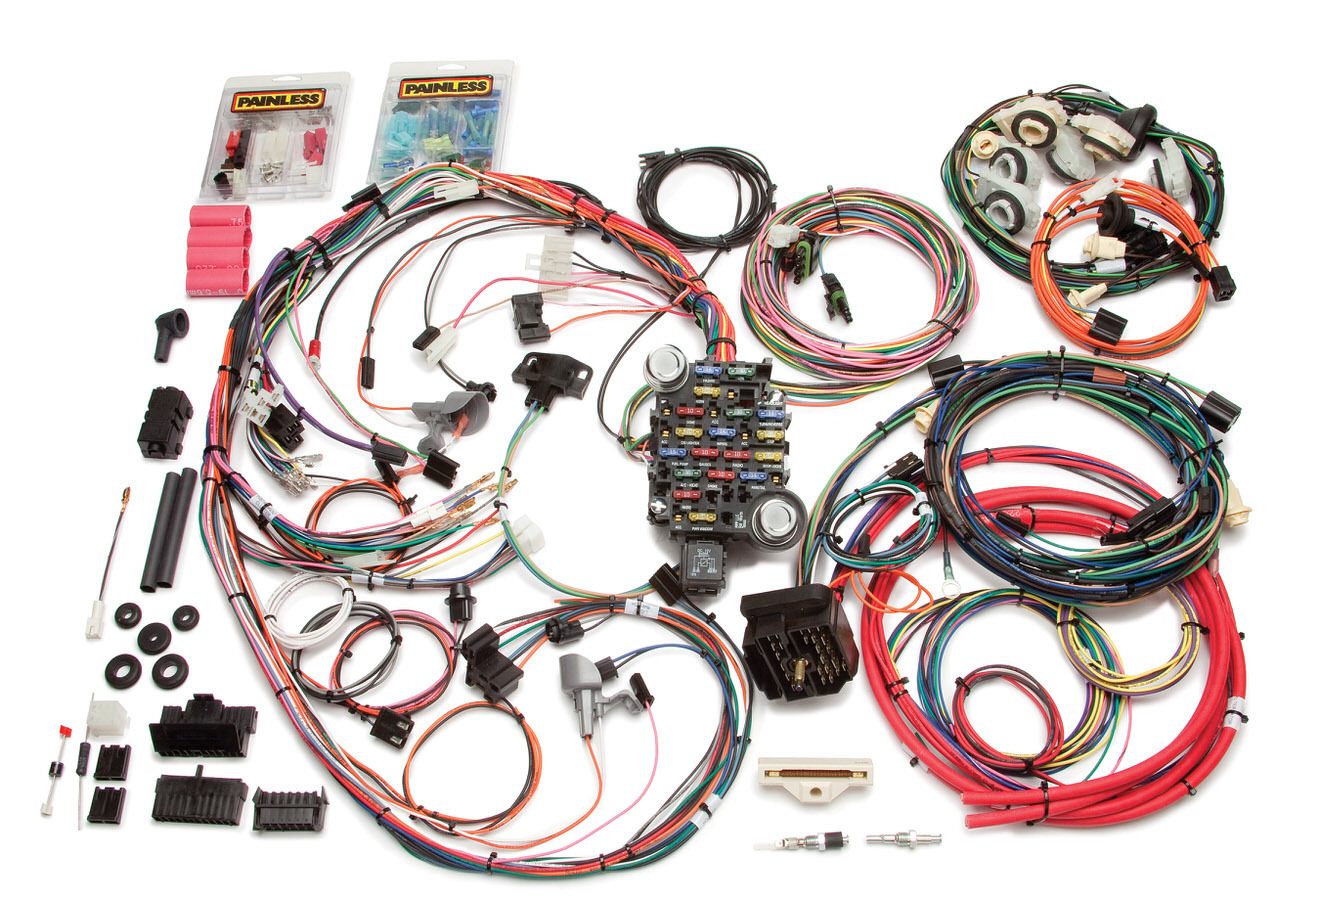 Painless Wiring 20114 Car Wiring Harness, Direct Fit, Complete, 26 Circuit, Chevy Camaro 1978-81, Kit